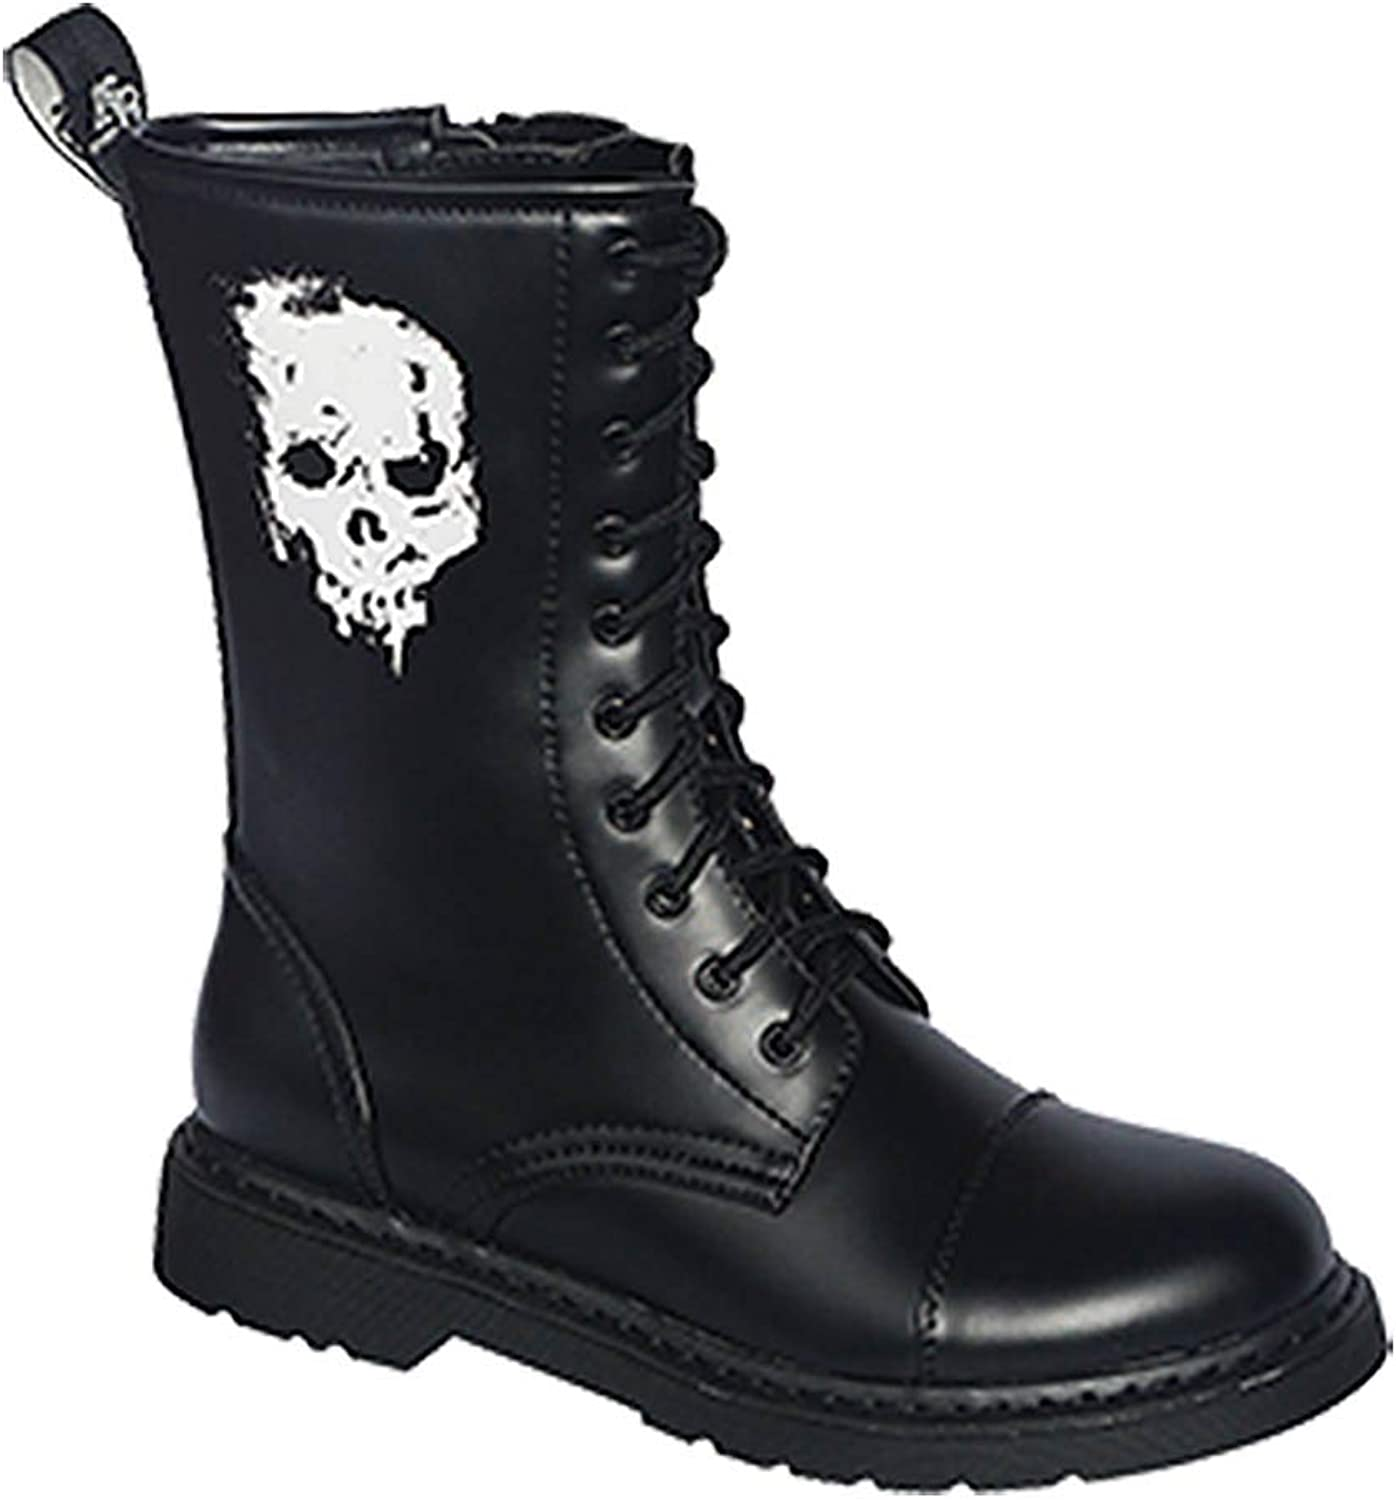 Knightsbridge 10-Hole Boots Dark Creations with Zipper UK Gothic Boots Various Motif 37-46